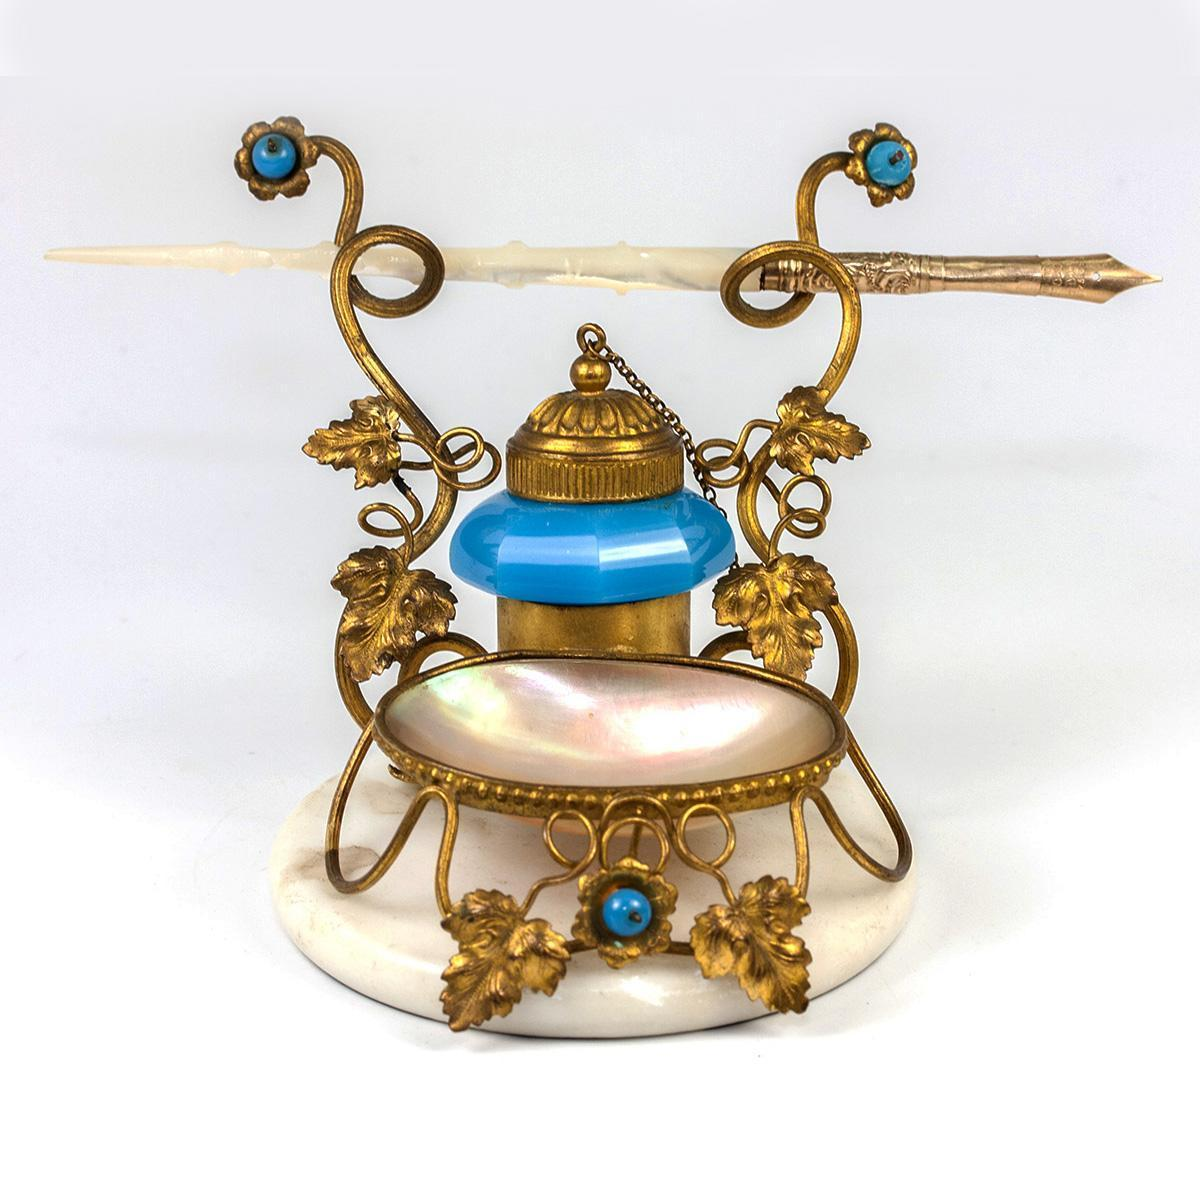 Superb Antique French Palais Royal Inkwell and Pen Stand, Opaline and Mother of Pearl in Ormolu